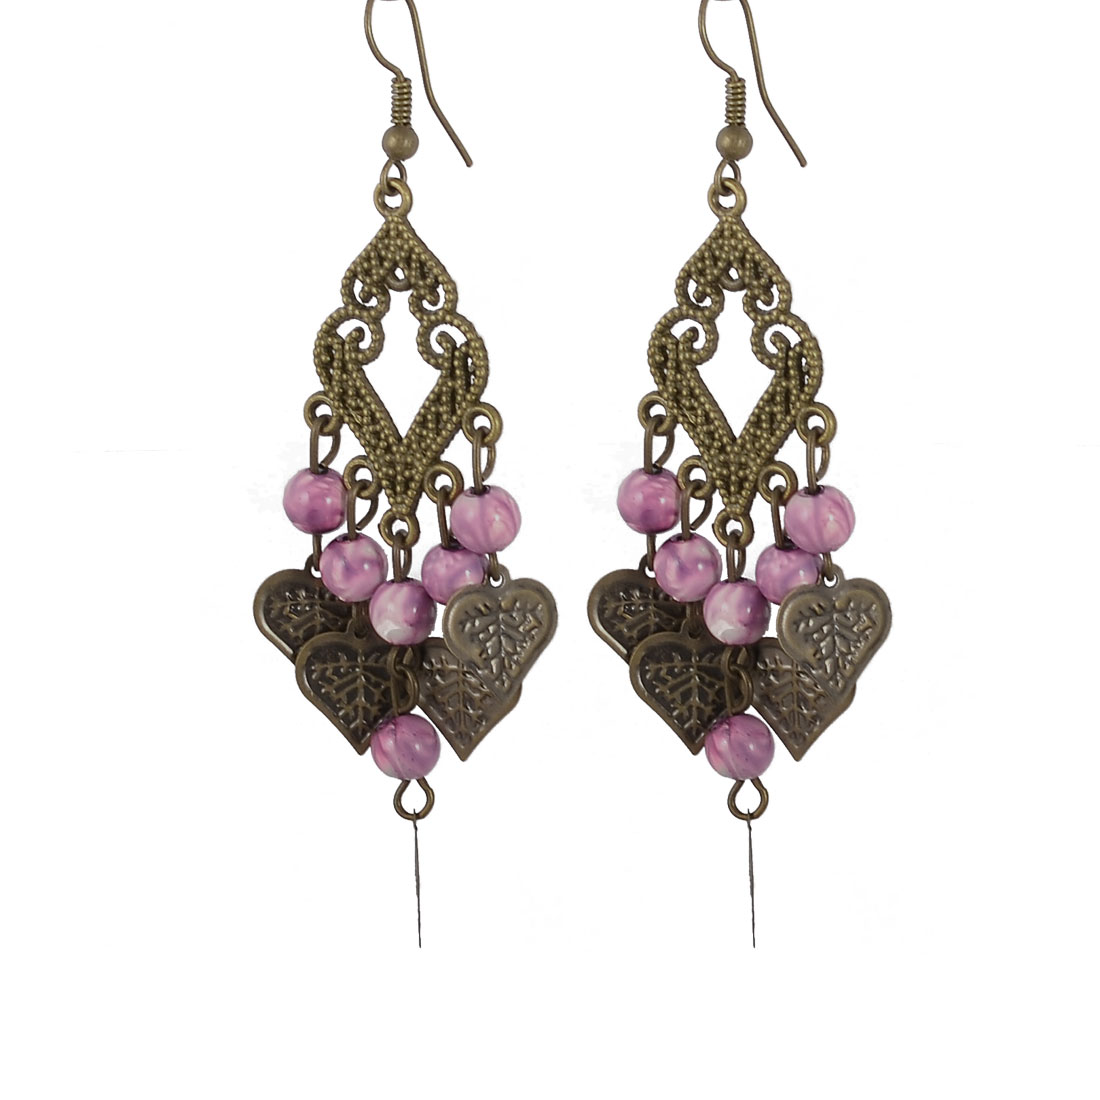 Purple Beads Leaf Shape Sheet Bronze Tone Rhomboid Hook Earrings